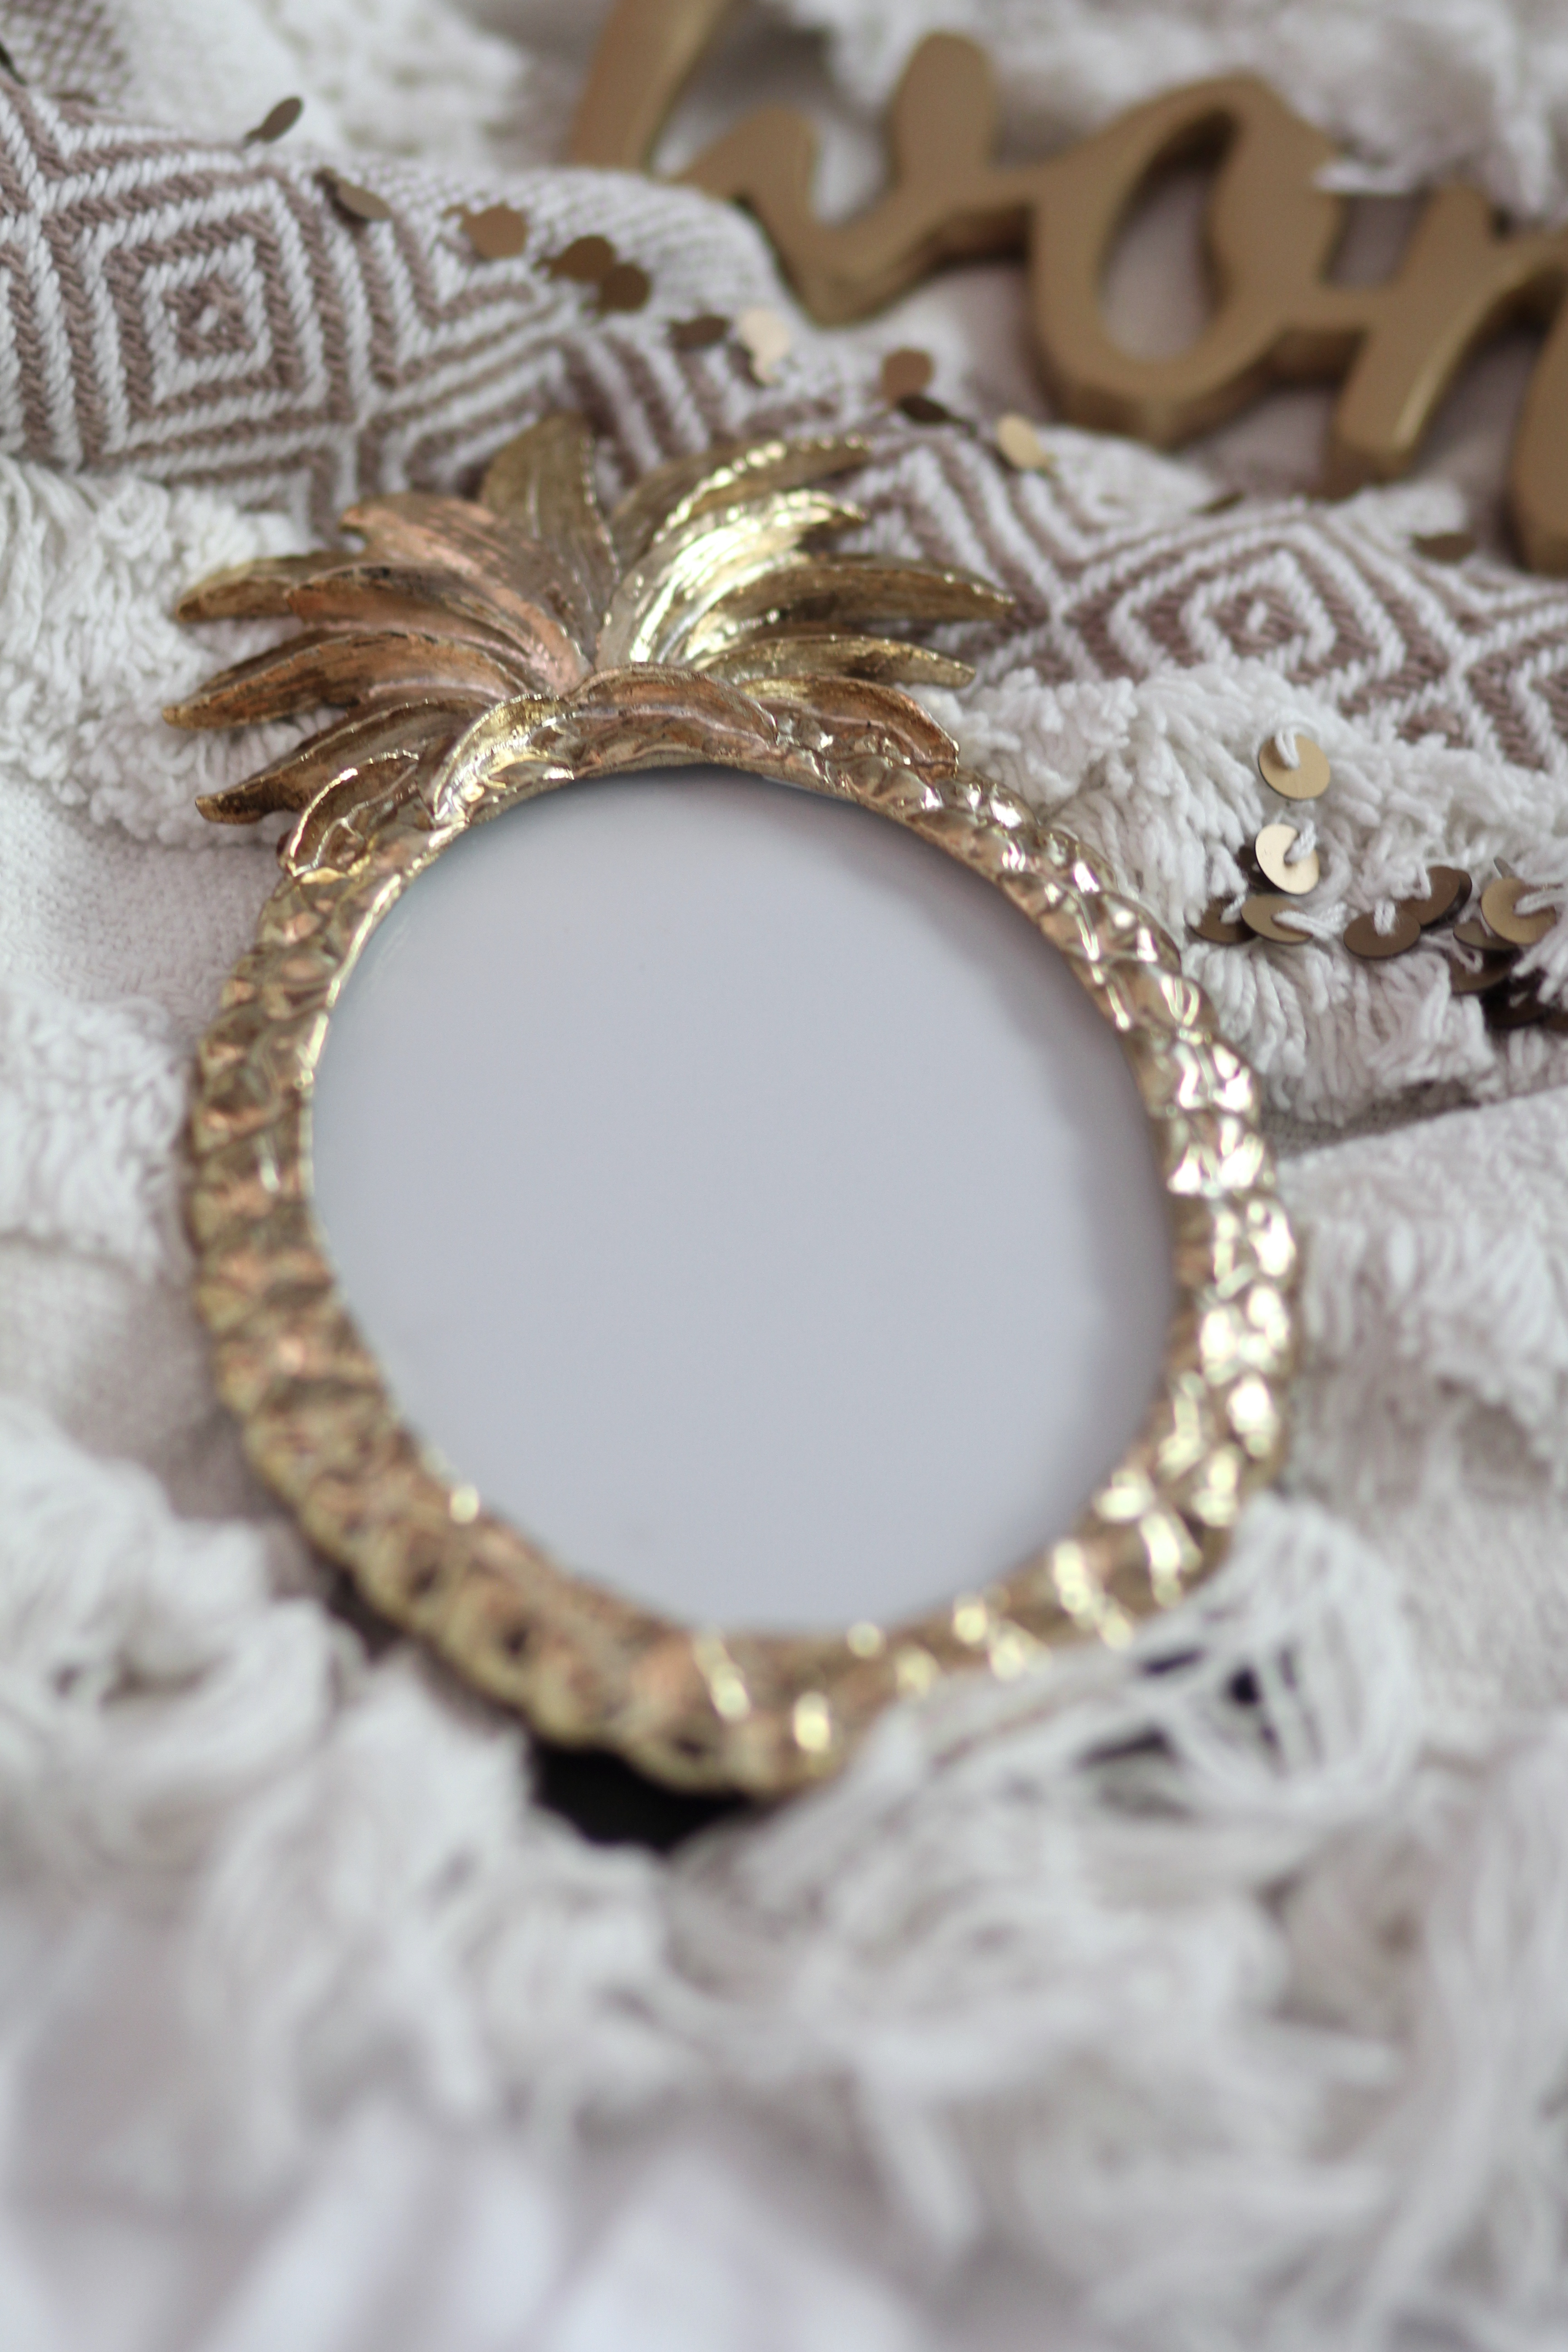 Gold pineapple picture frame from Marks & Spencer